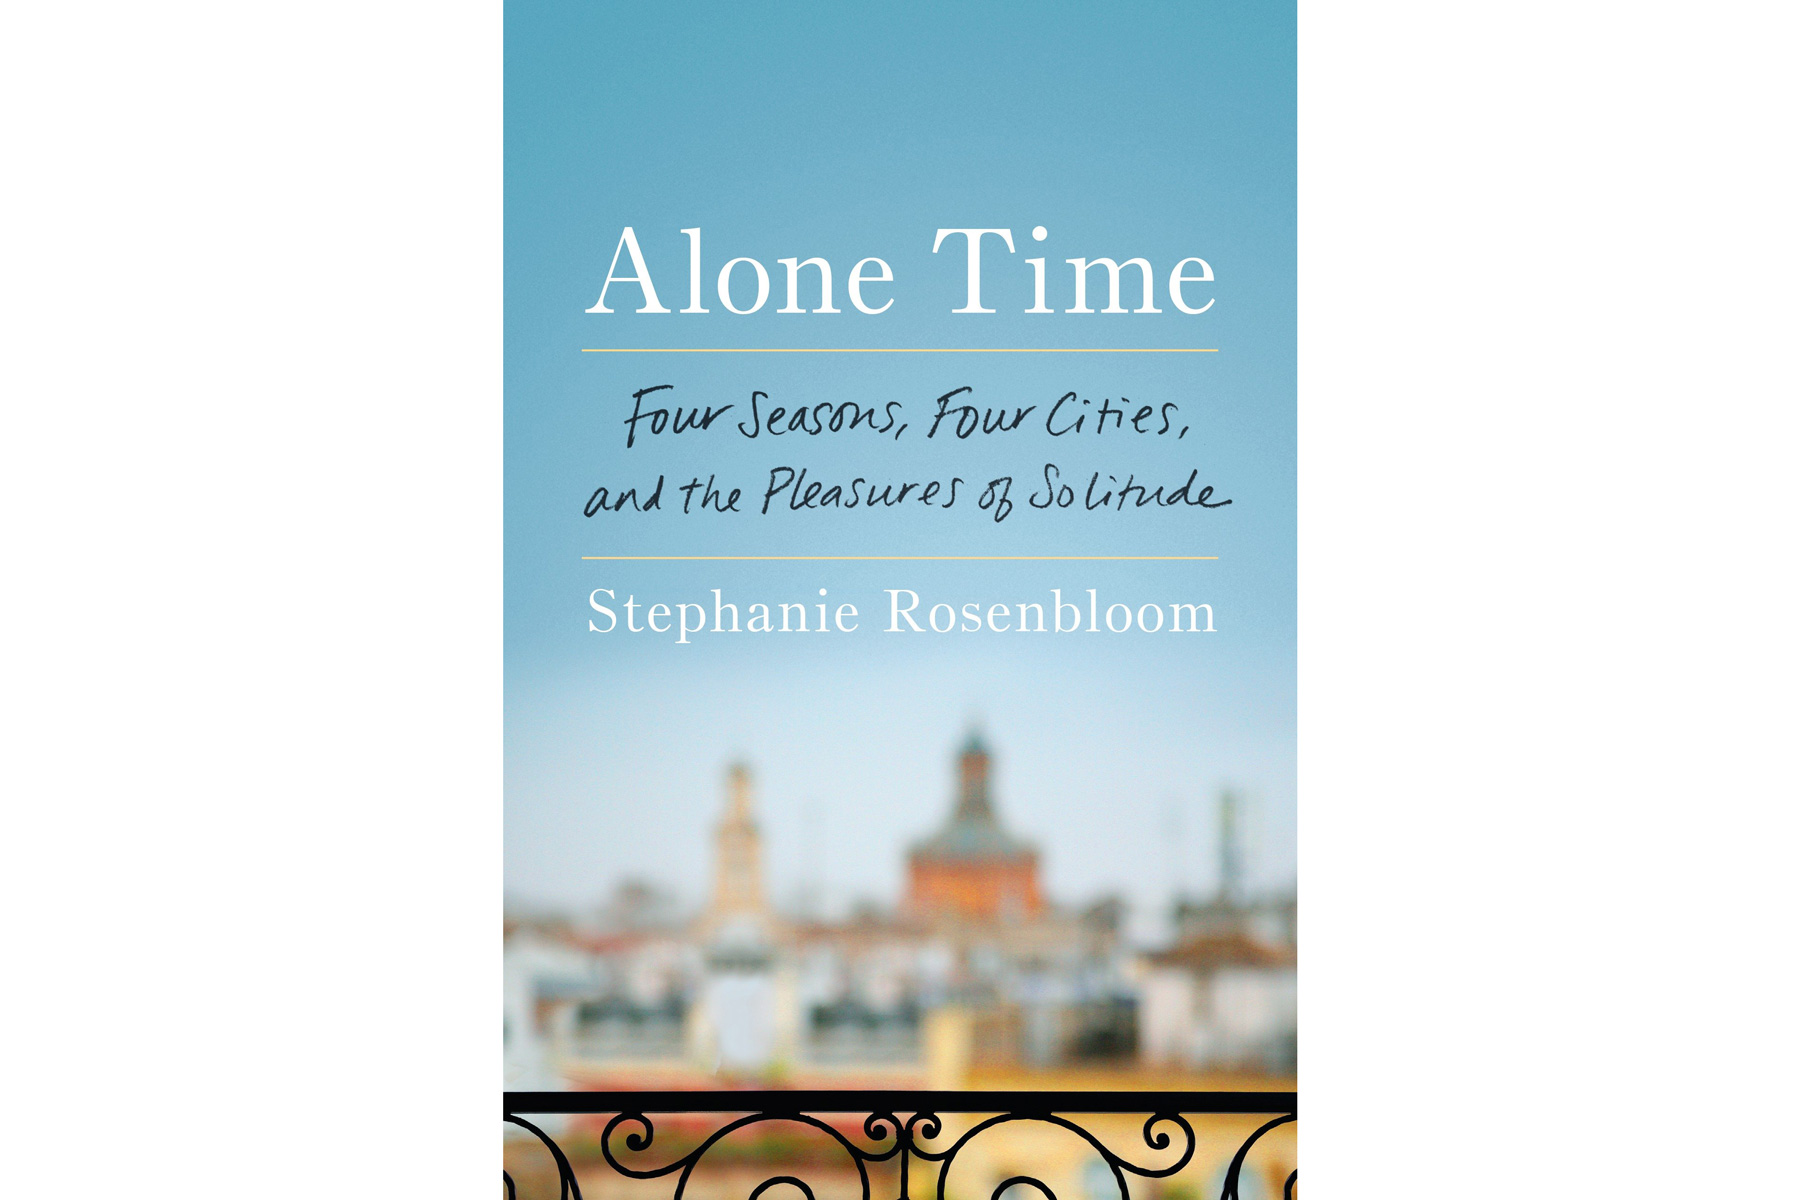 Alone Time, by Stephanie Rosenbloom